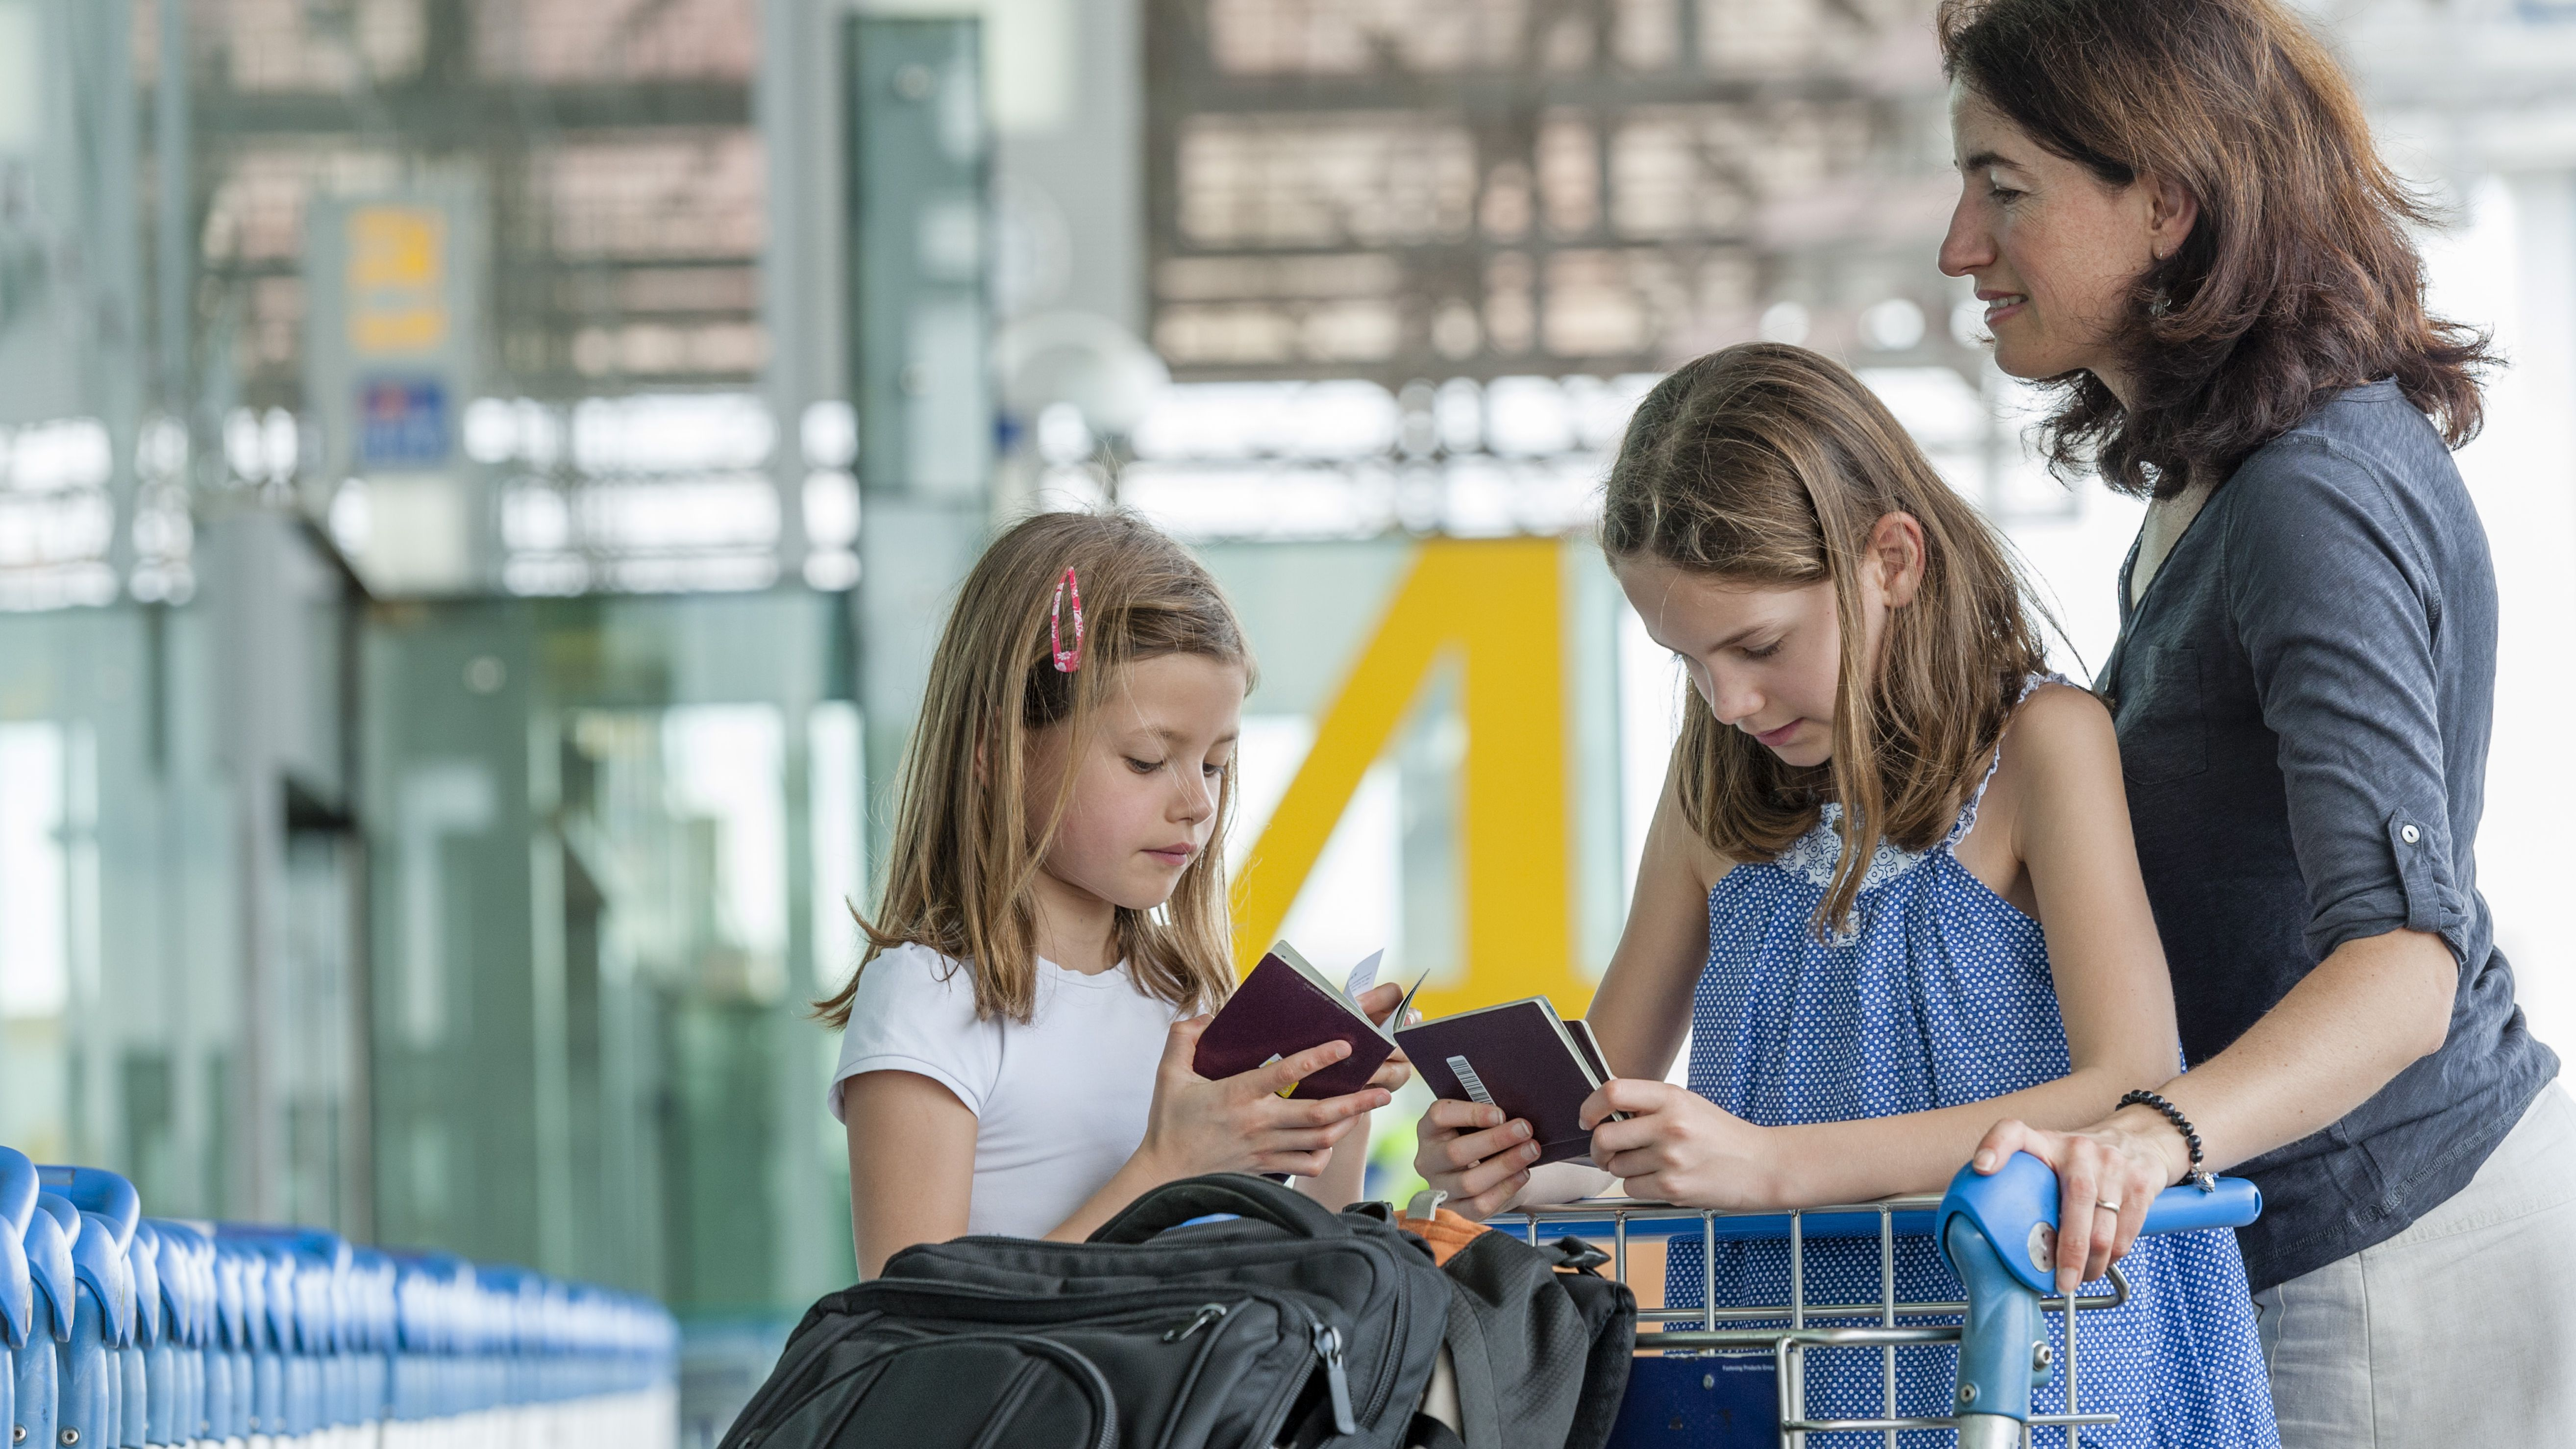 Kids Passport Rules That Single Parents Need to Know